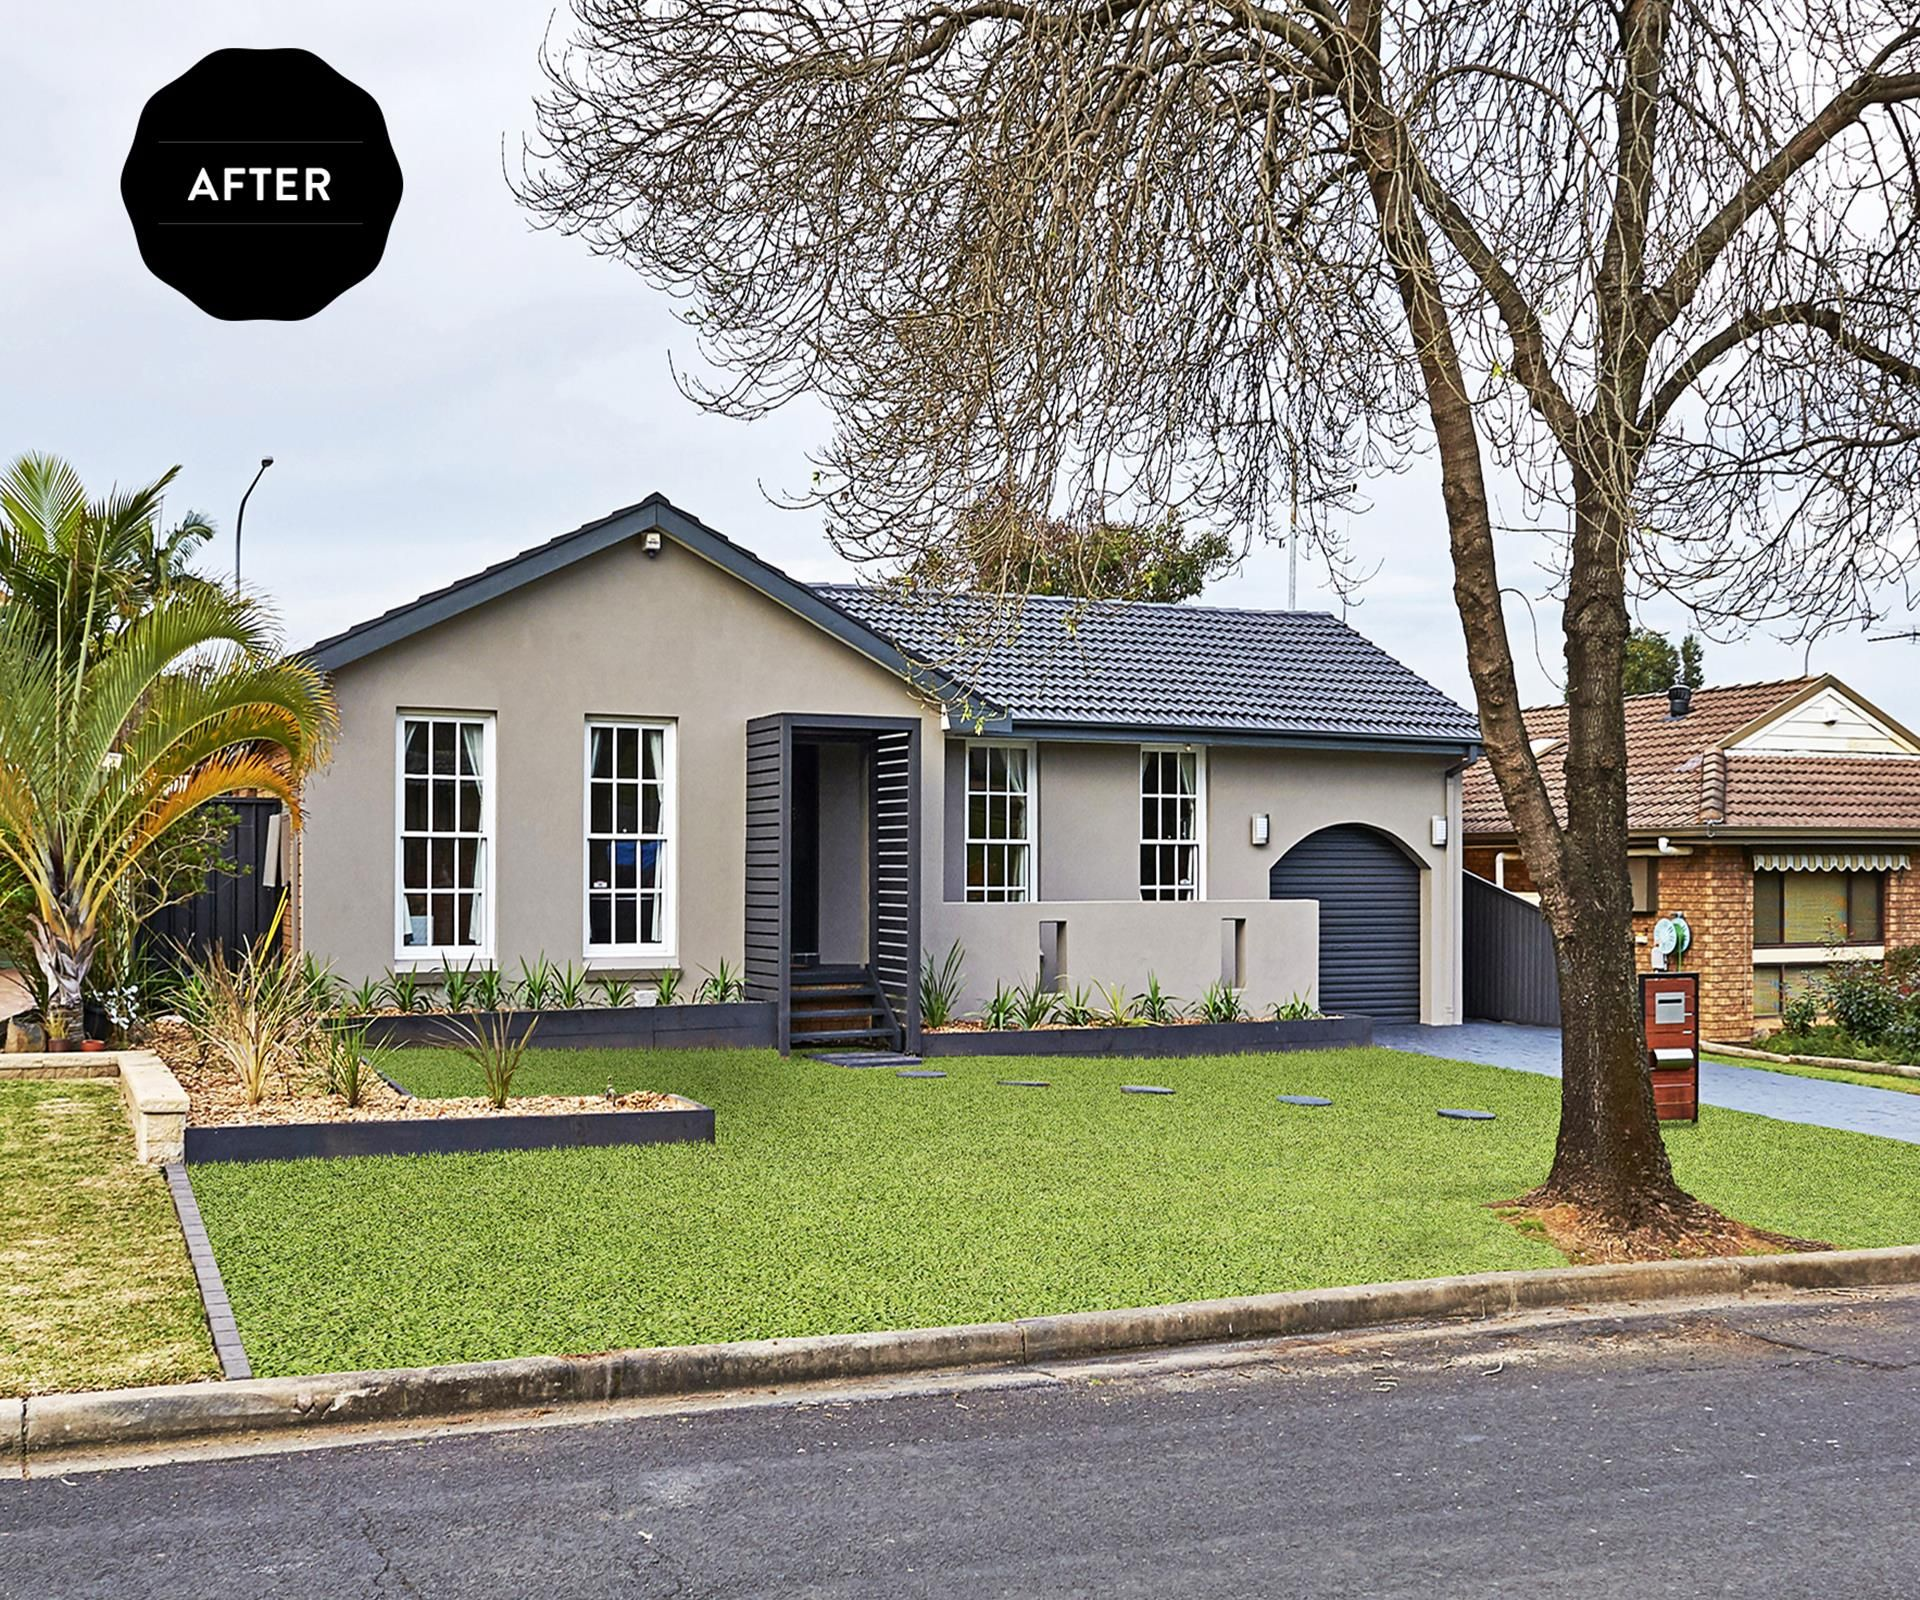 Before And After: Facelift Transforms Old Home ...